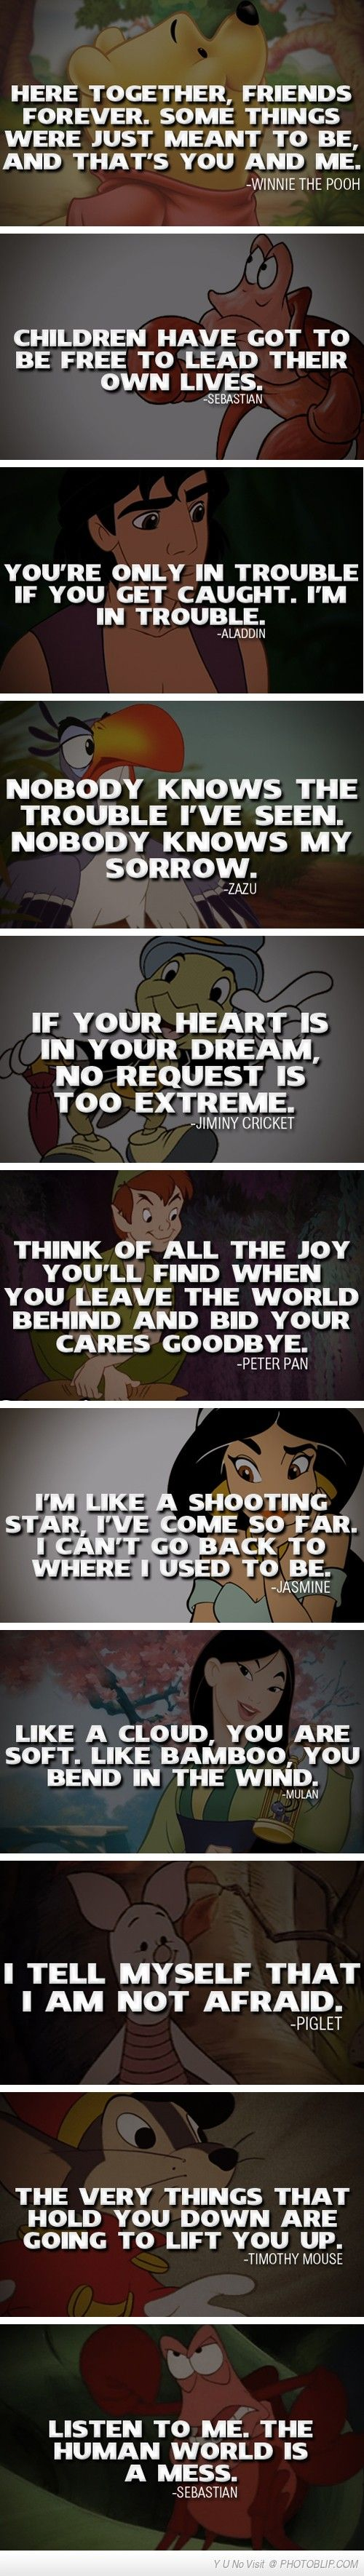 Disney Quote Compilation.I read these in the voices of the characters